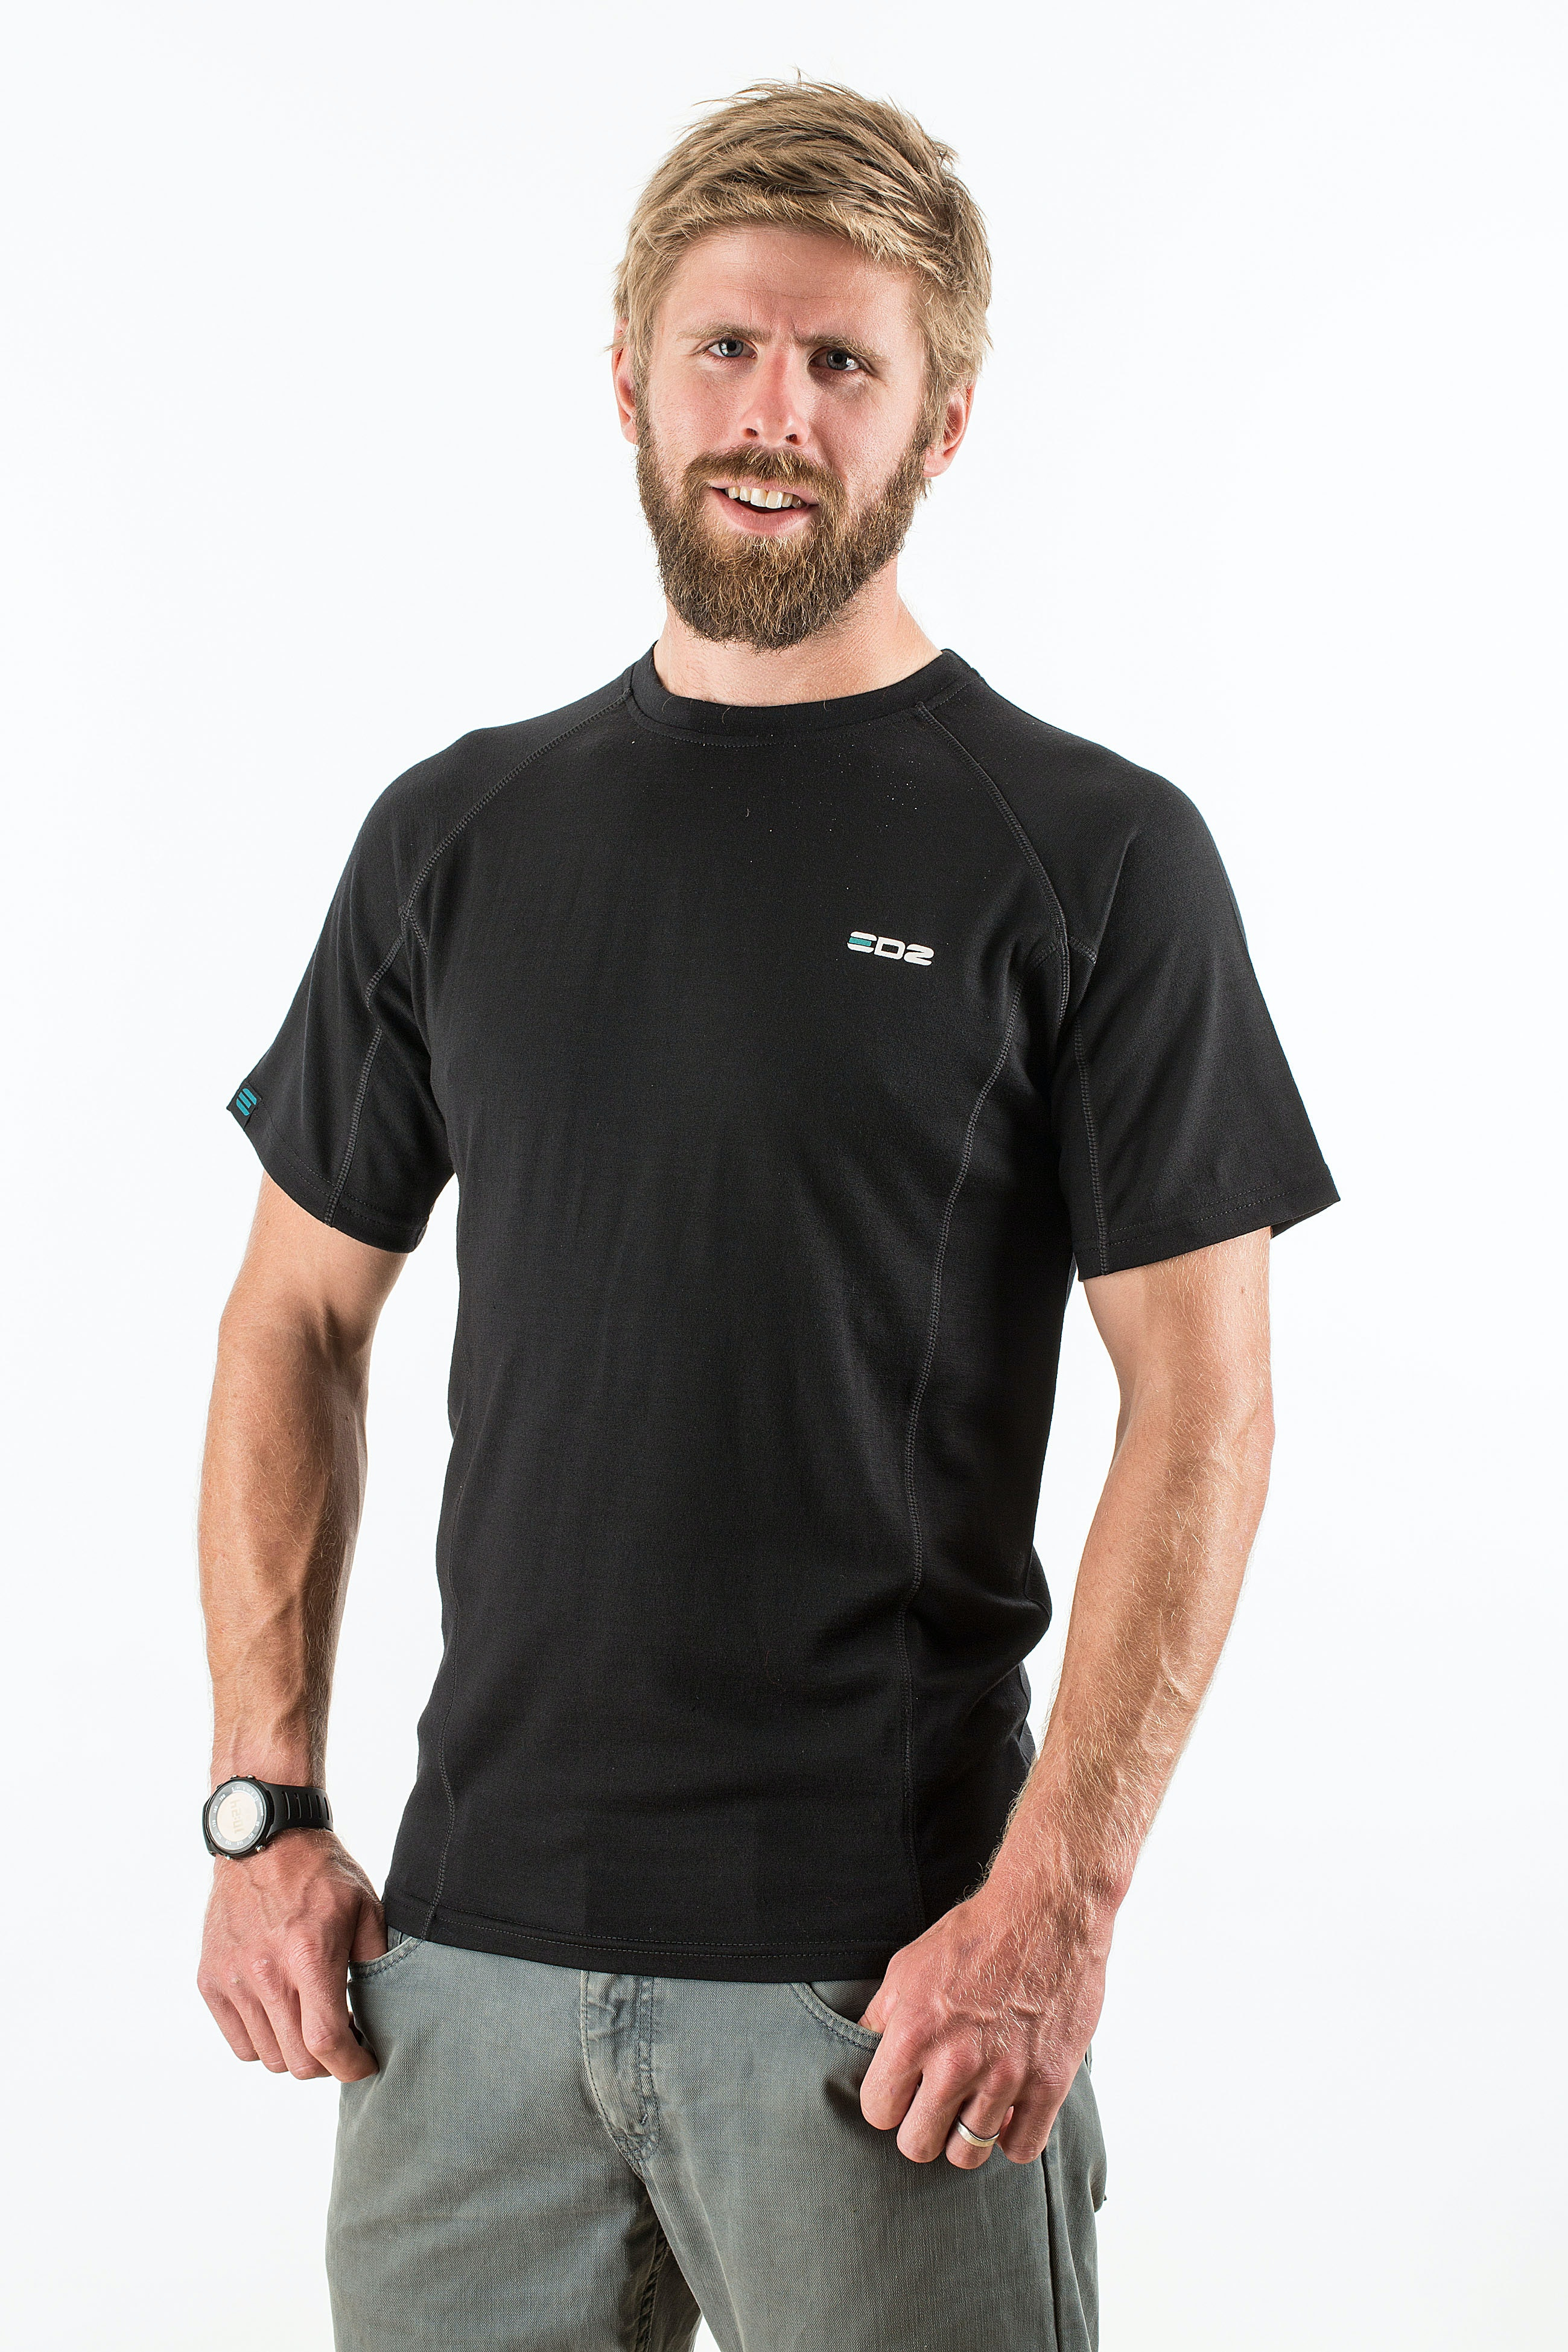 EDZ Merino T-Shirt sweepstakes